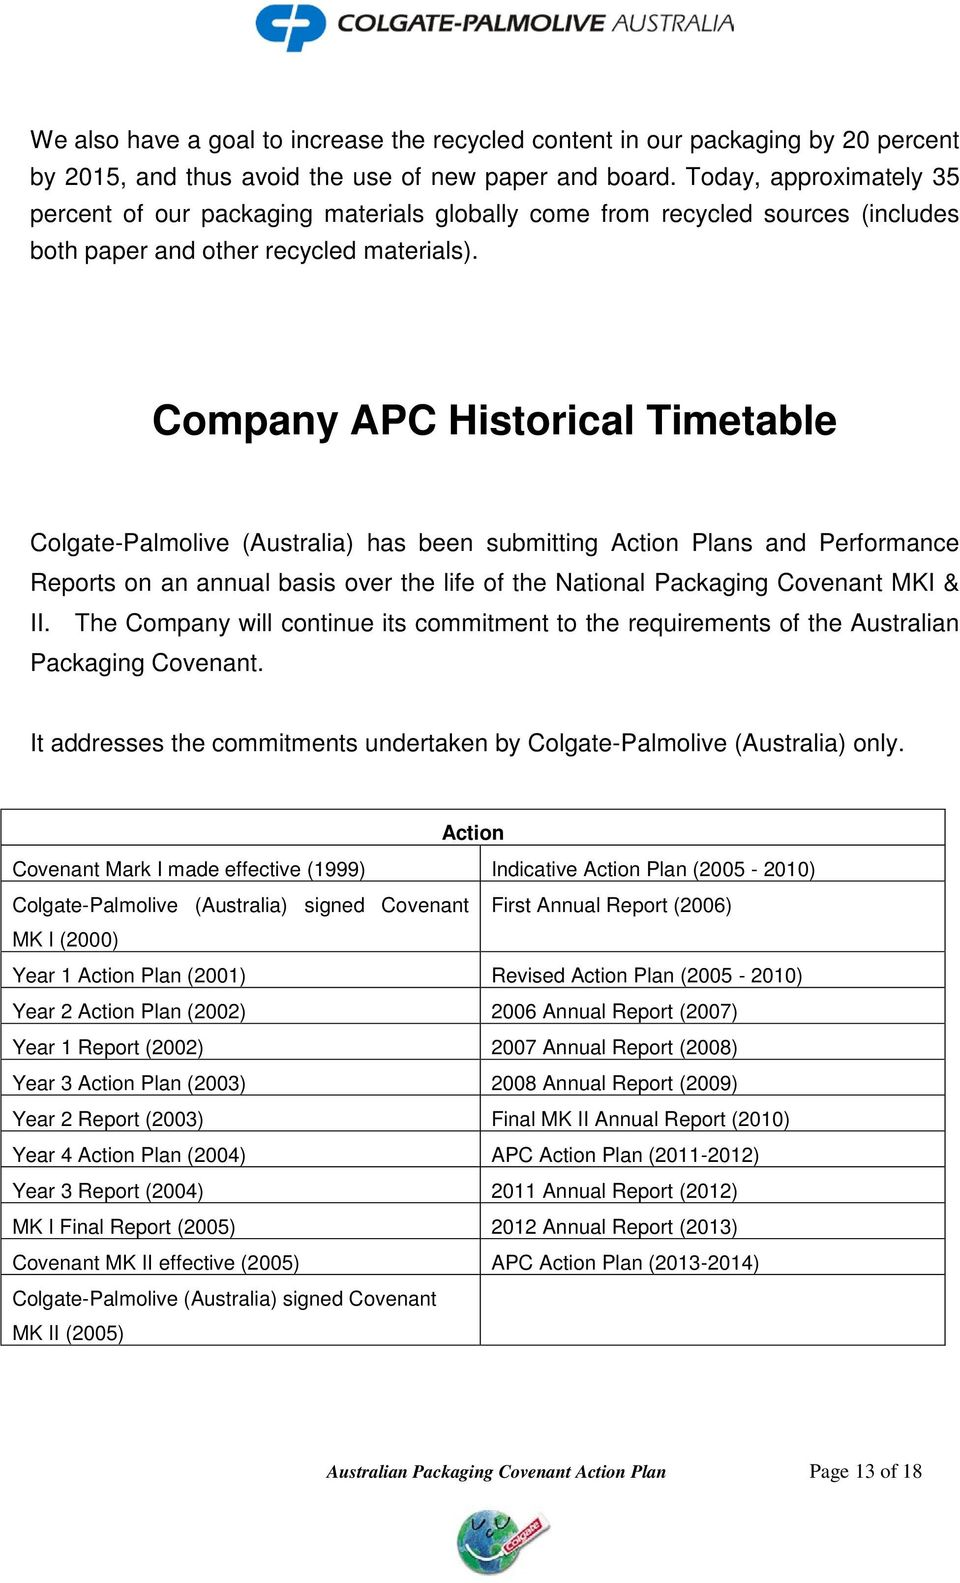 Company APC Historical Timetable Colgate-Palmolive (Australia) has been submitting Action Plans and Performance Reports on an annual basis over the life of the National Packaging Covenant MKI & II.